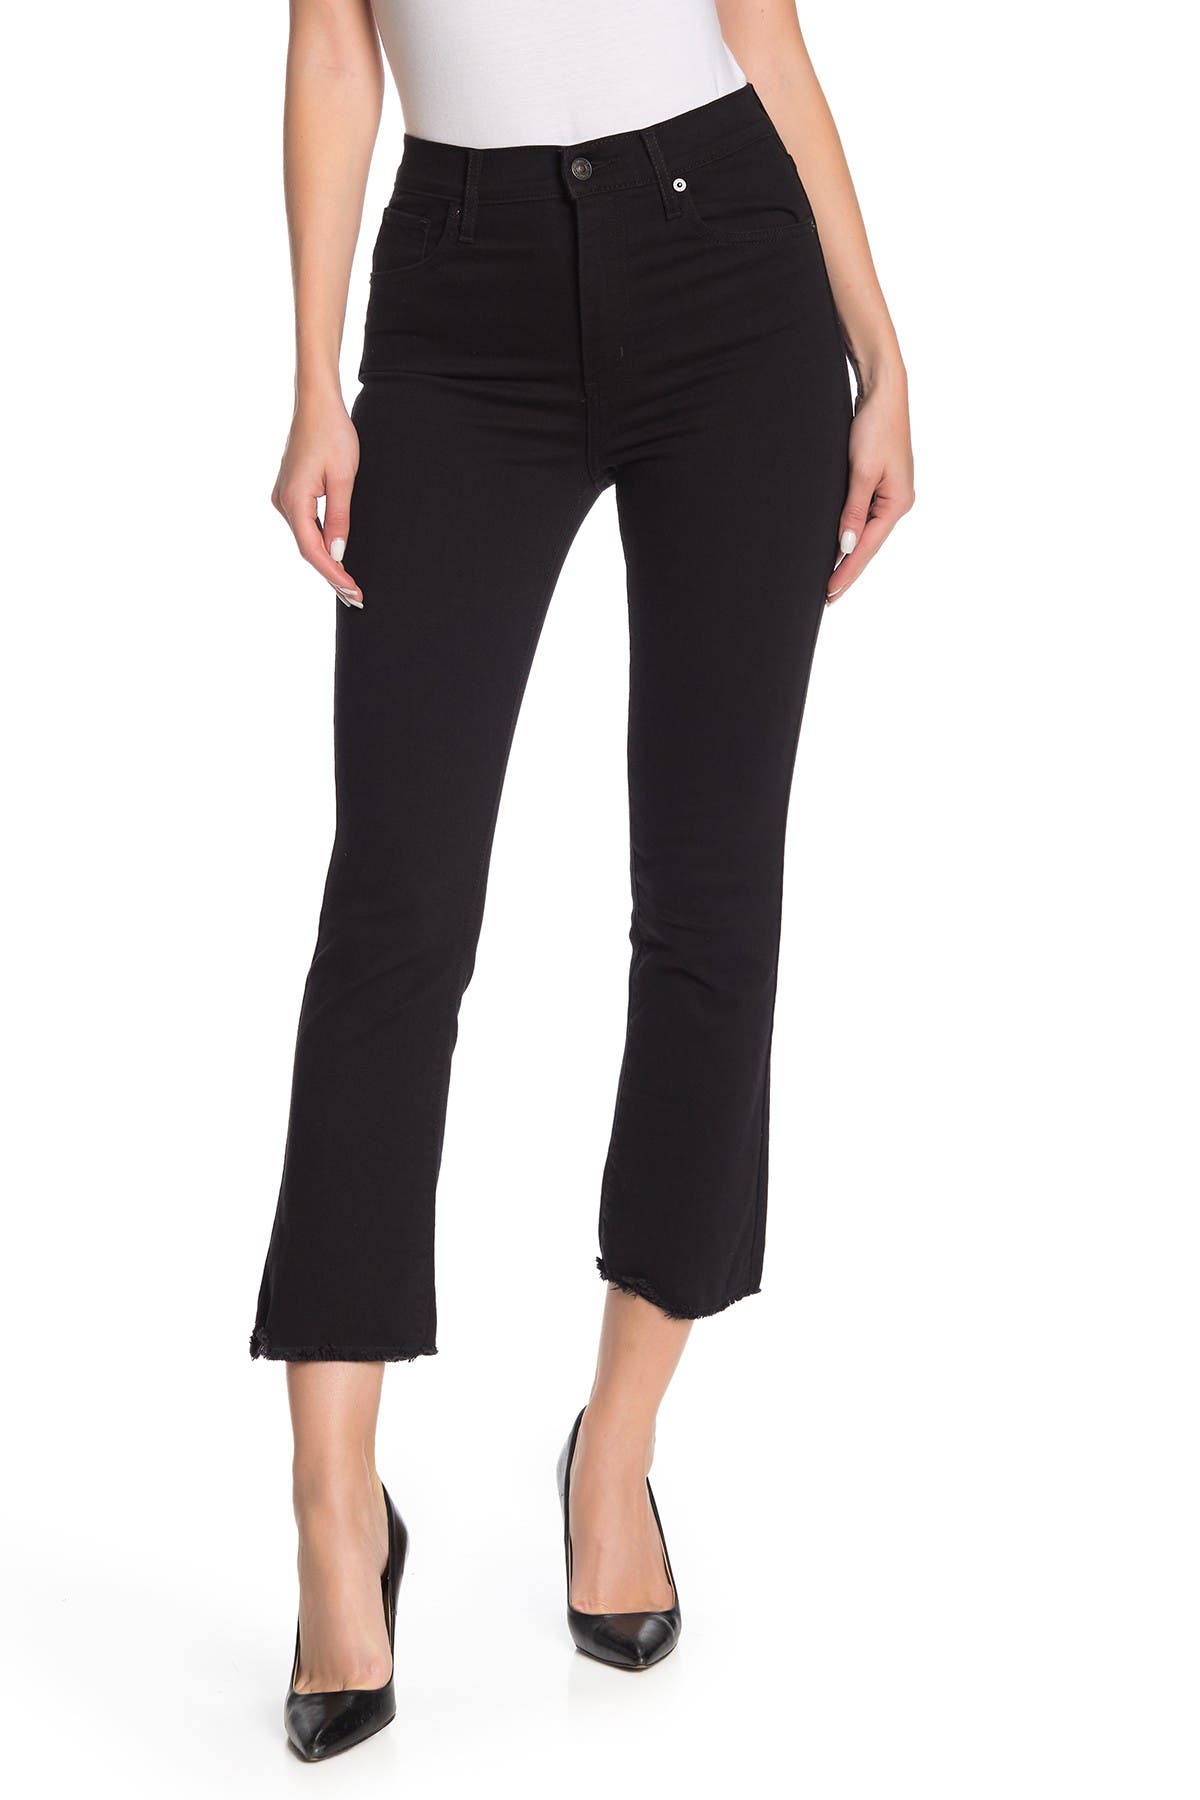 Image of Levi's Mile High Crop Flare Jeans